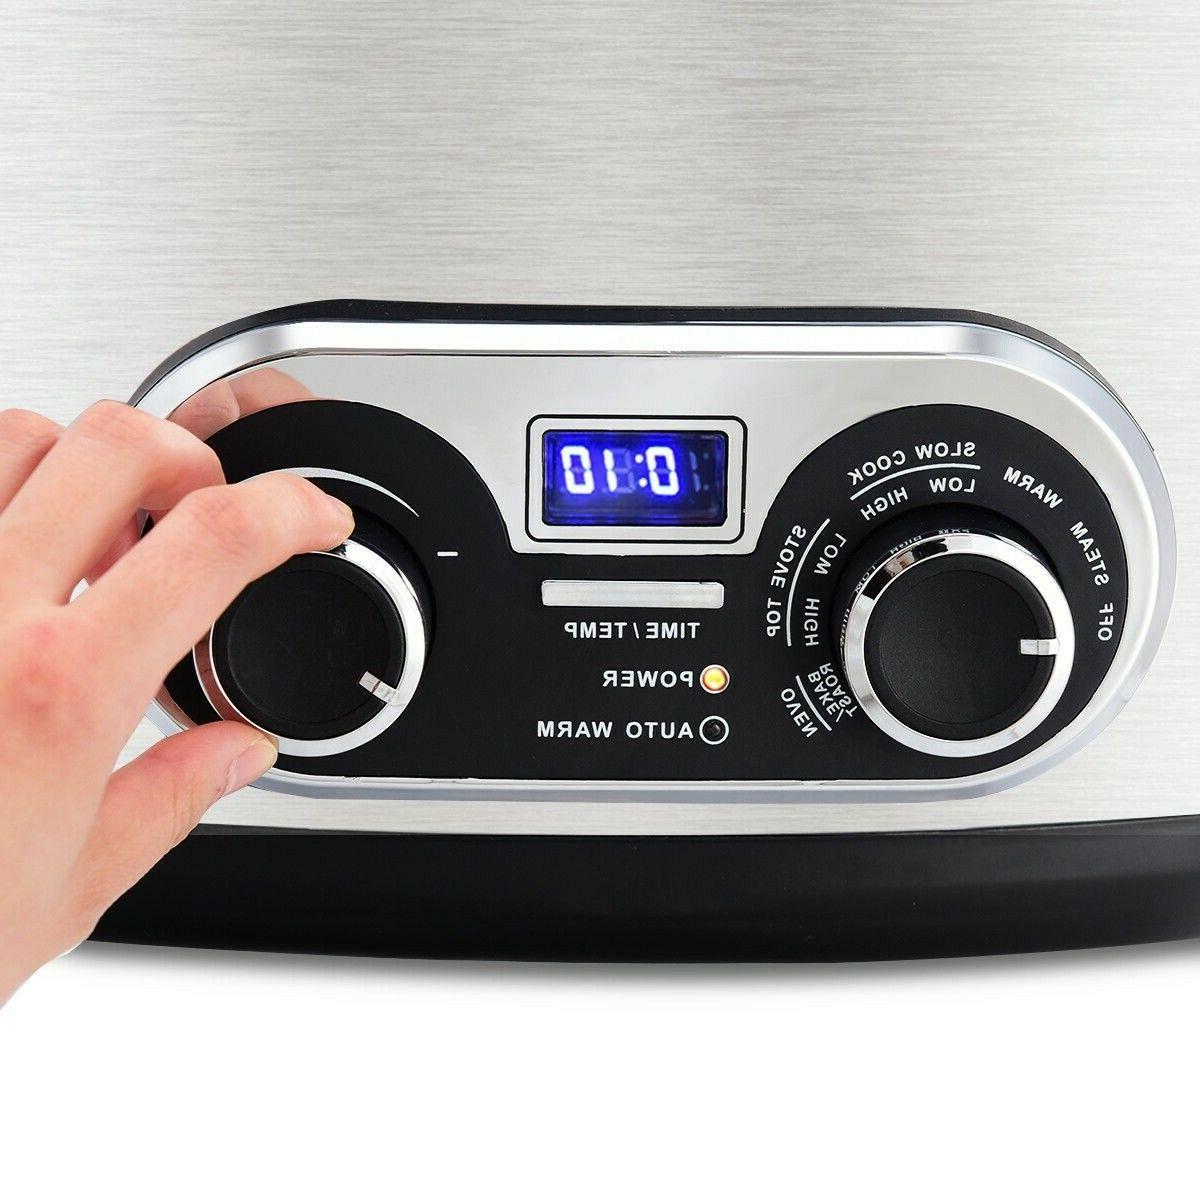 4-in-1 6 Multi Cooker SHIPPING*